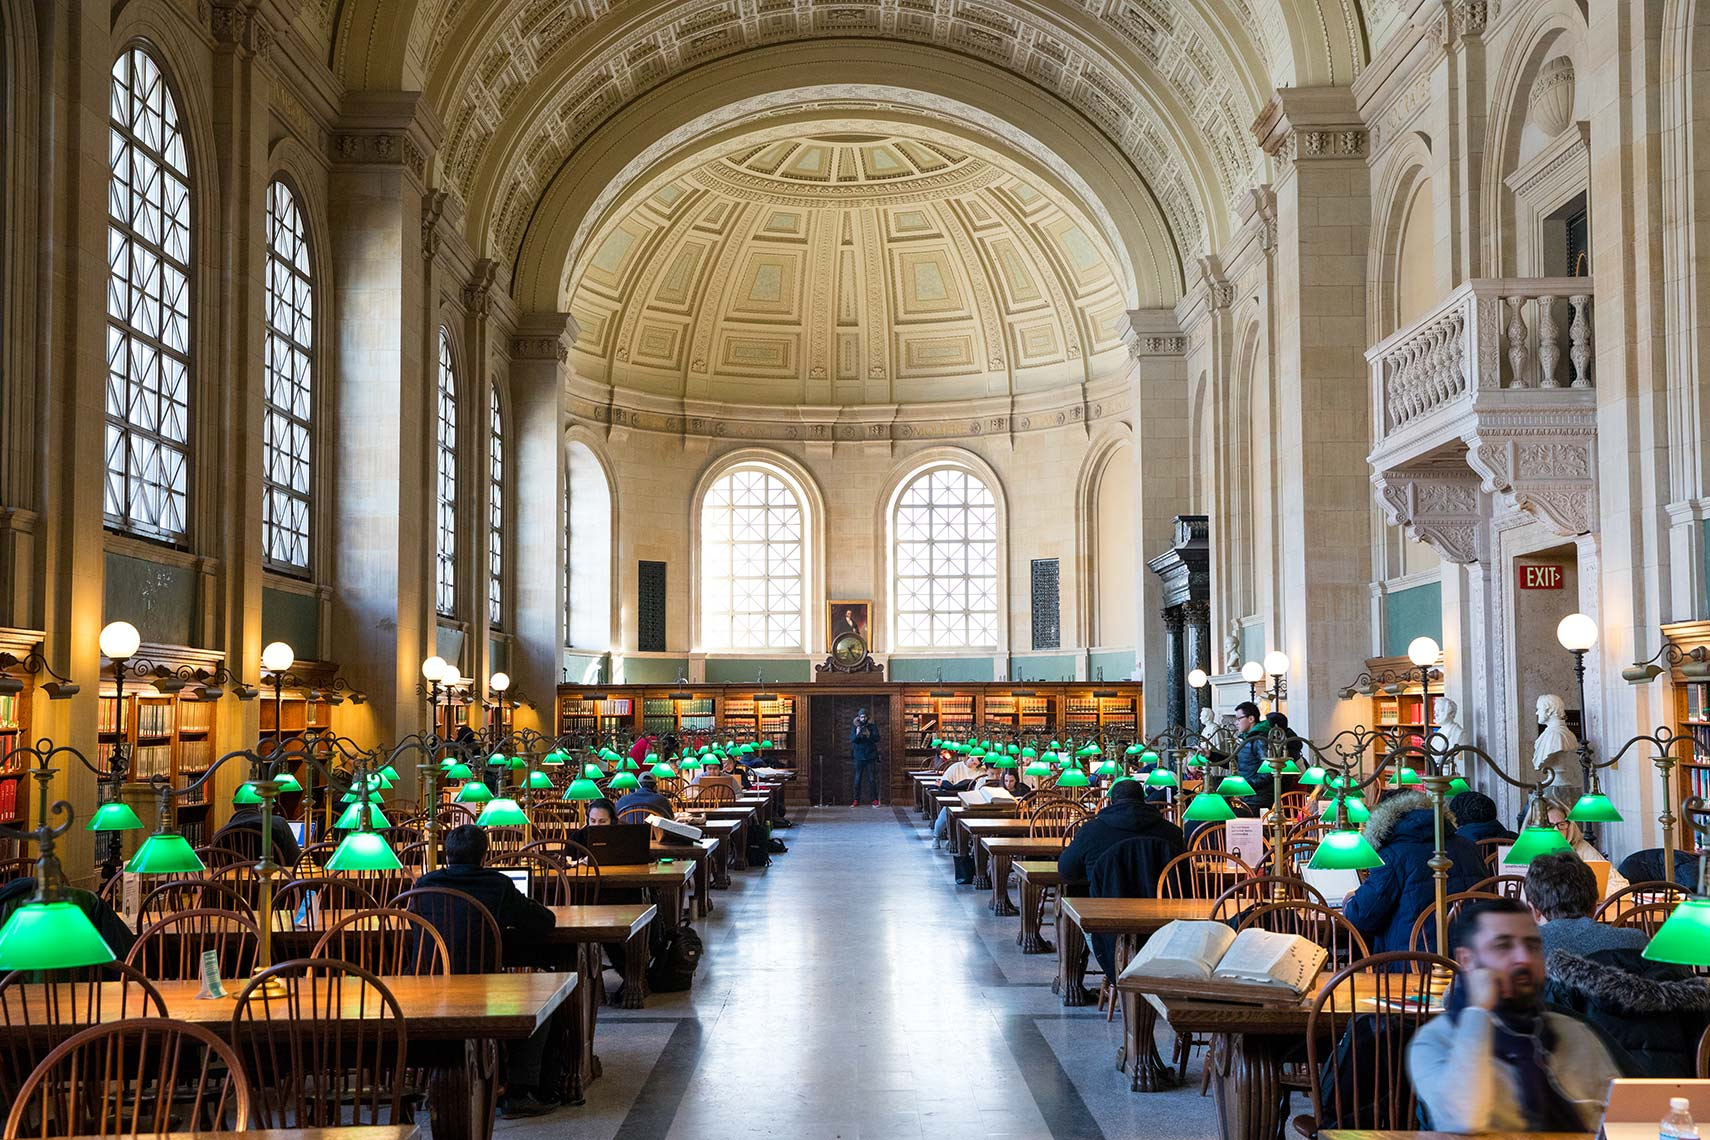 an architectural photograph of the interior of the Boston Public Library